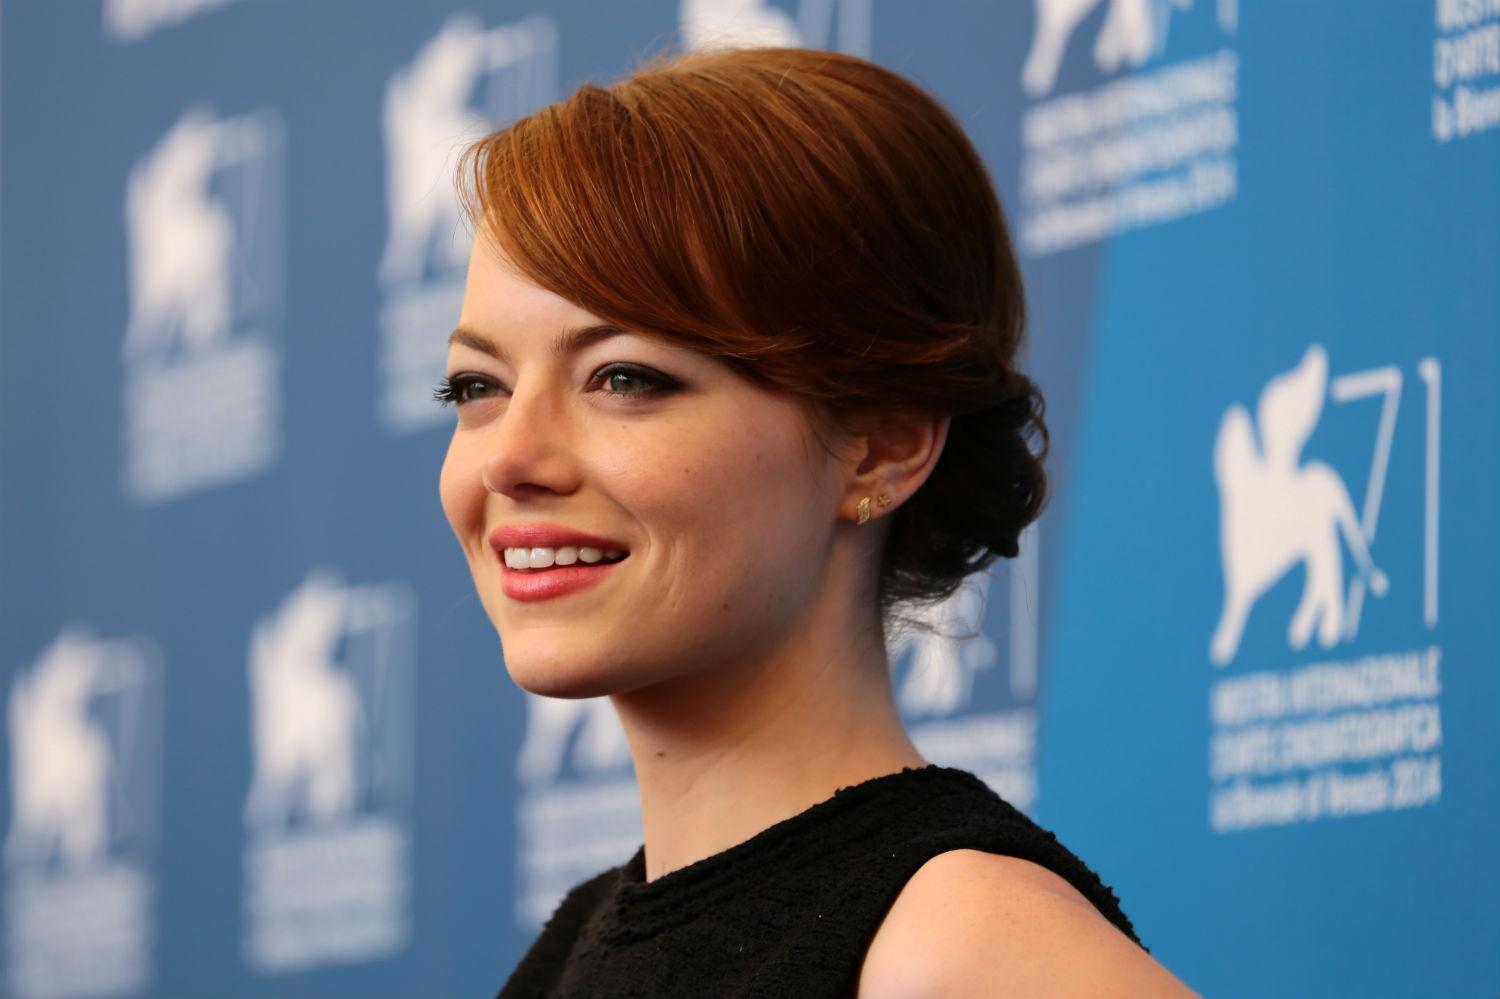 Emma Stone might star in Cruella de Vil origin movie Emma Stone Maniac